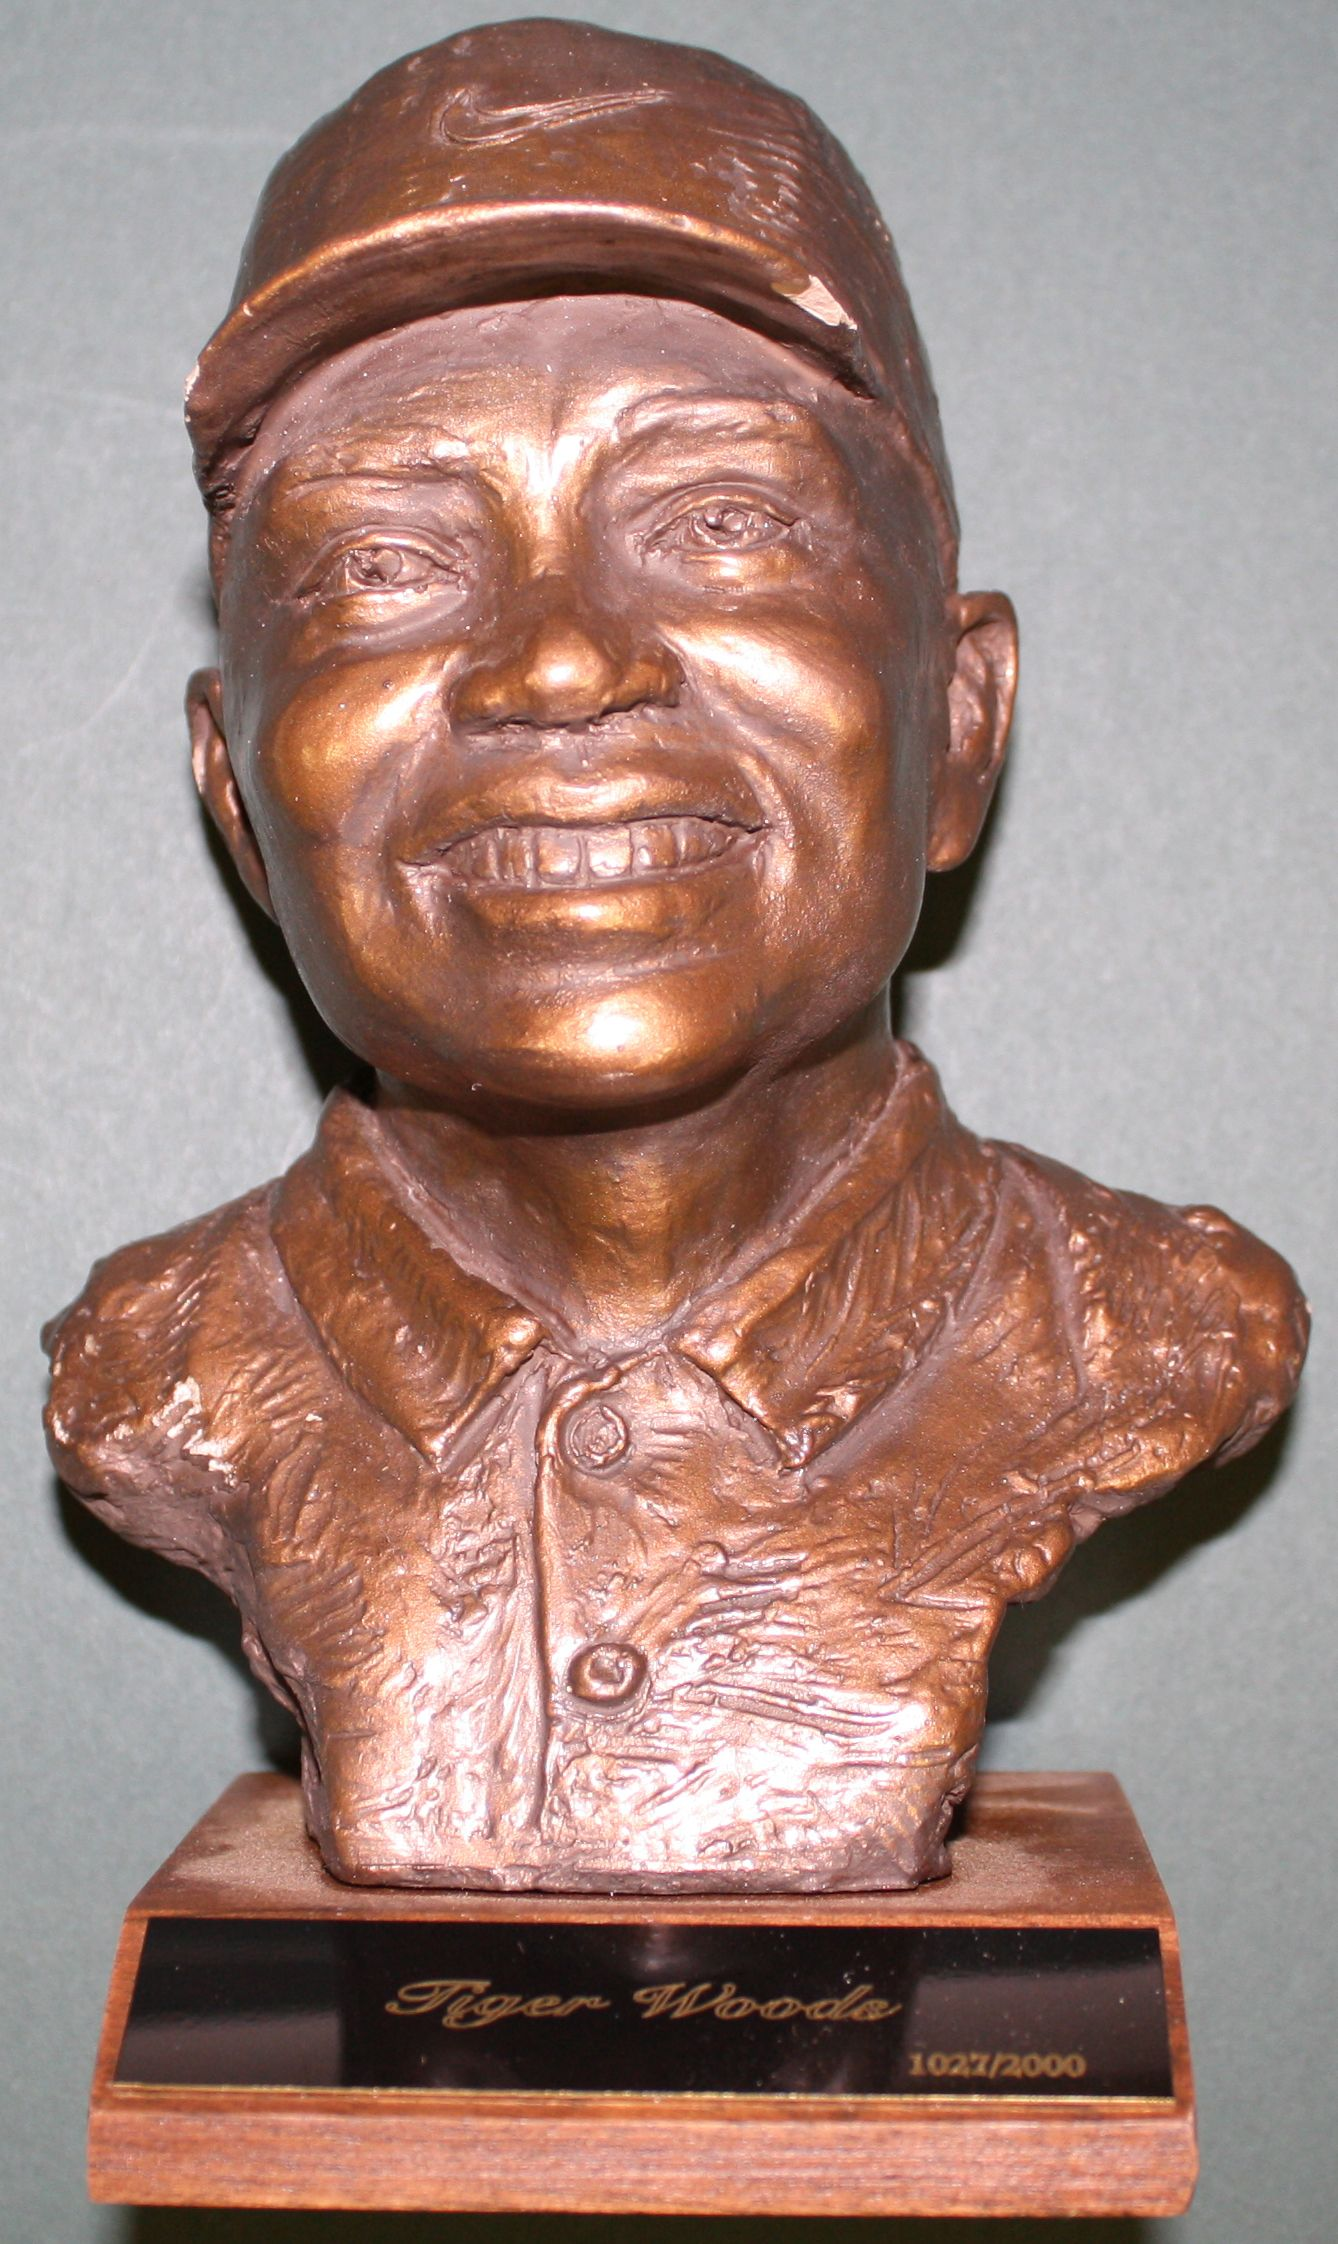 Tiger Woods Bronze Statue by Brad Lorang 2003 #1027/2000 - 2178a_lg